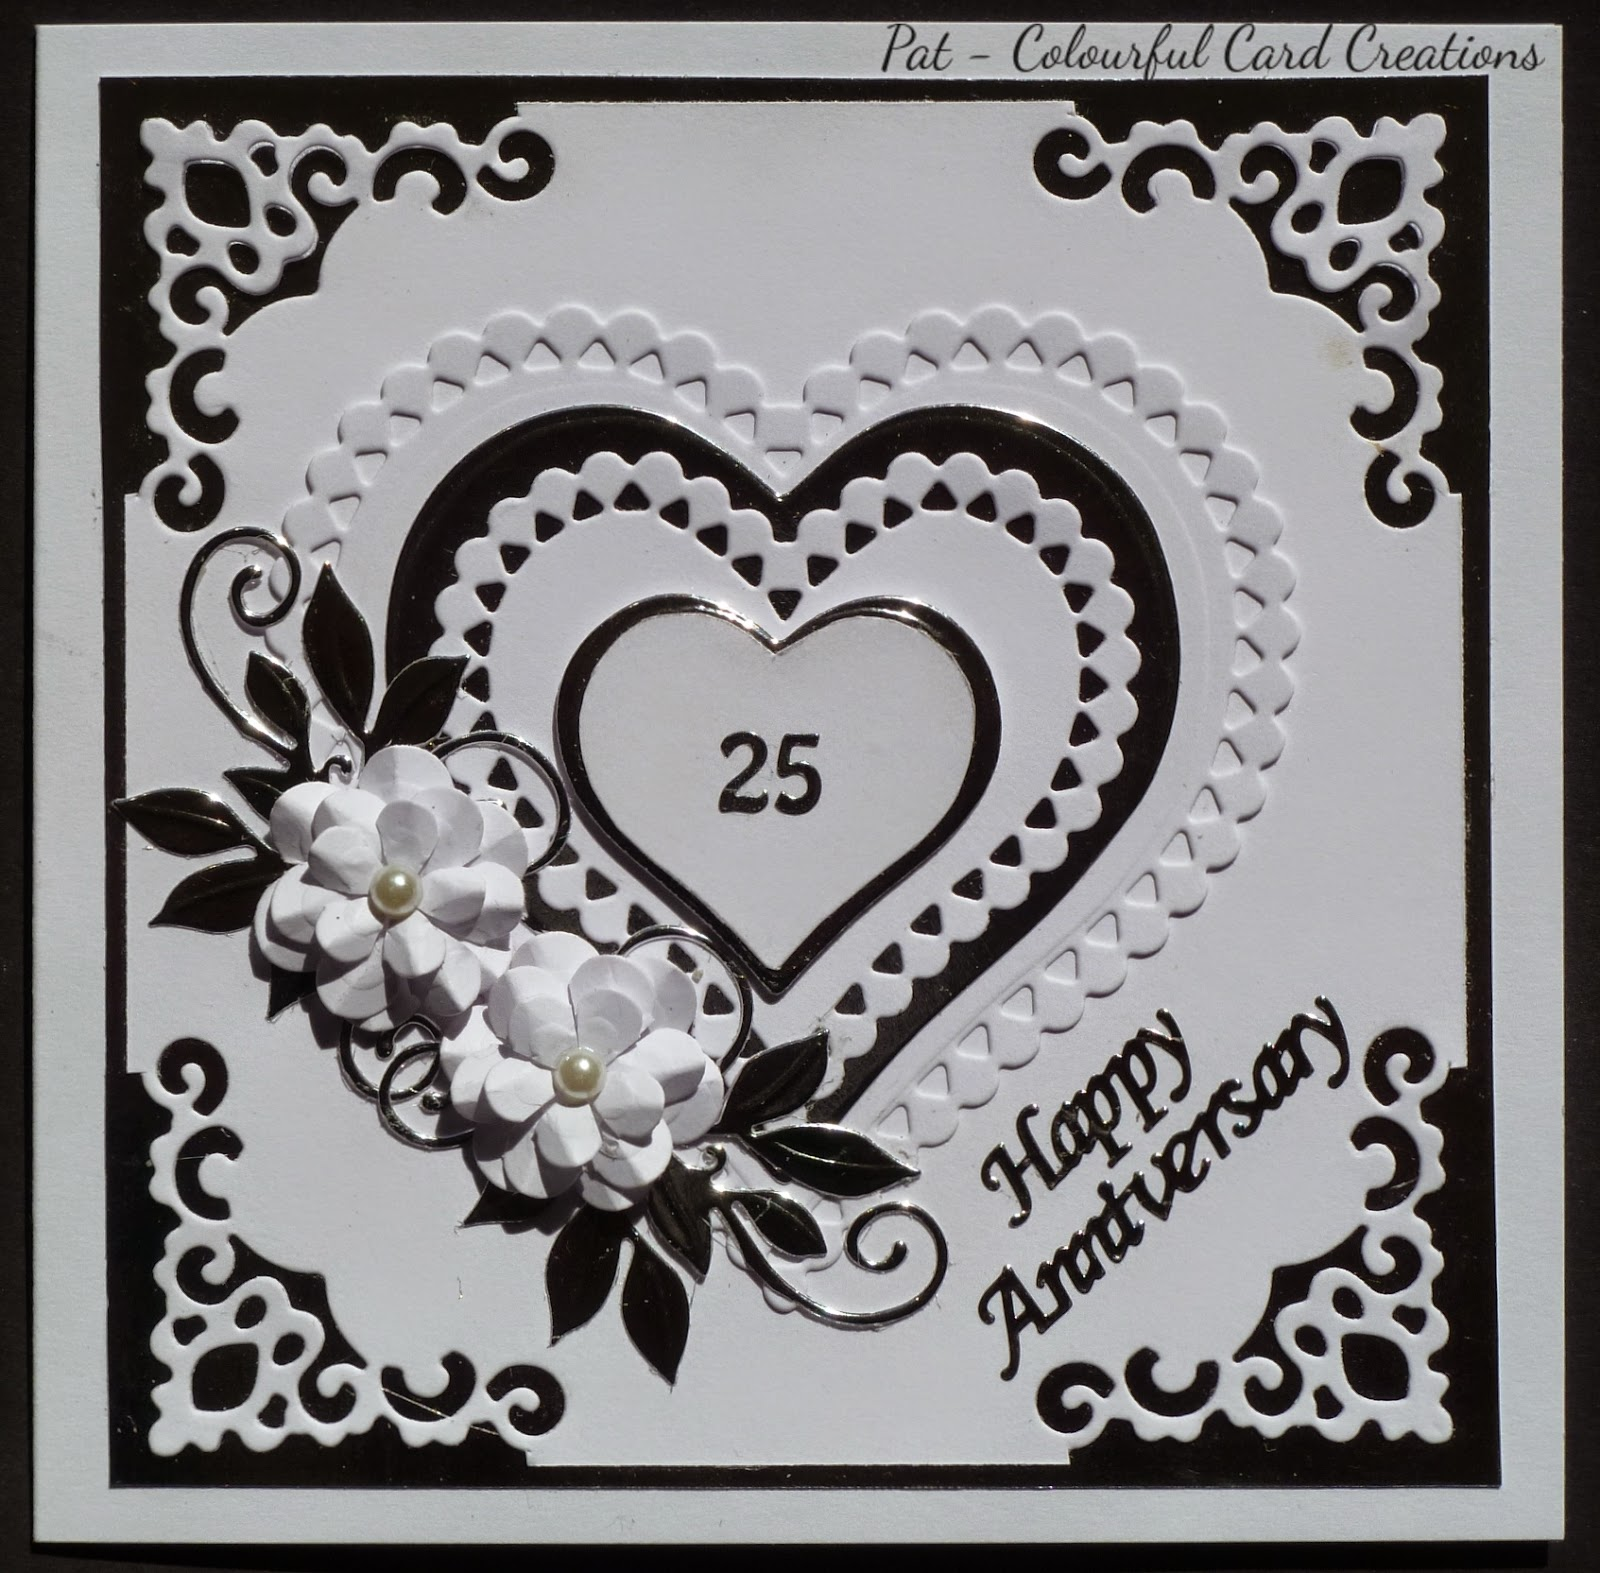 colourful card creations silver wedding anniversary